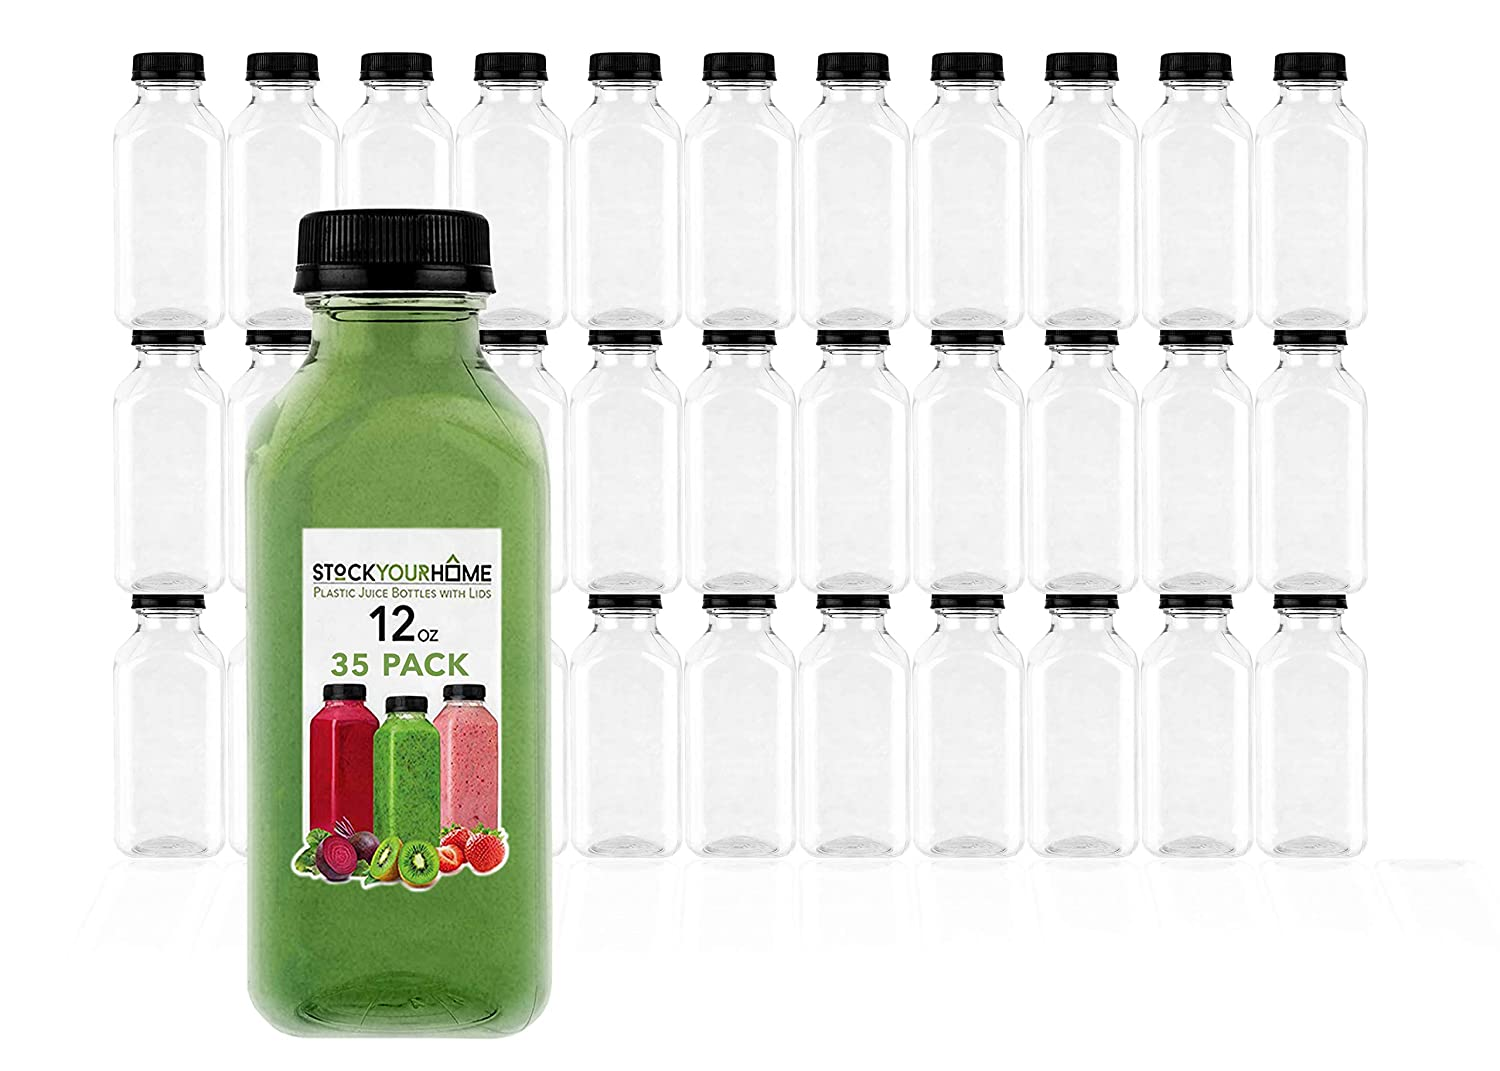 Plastic Juice Bottles with Lids, Juice Drink Containers with Caps for Juicing Smoothie Drinking Cold Beverages, 12 Oz, 35 Count